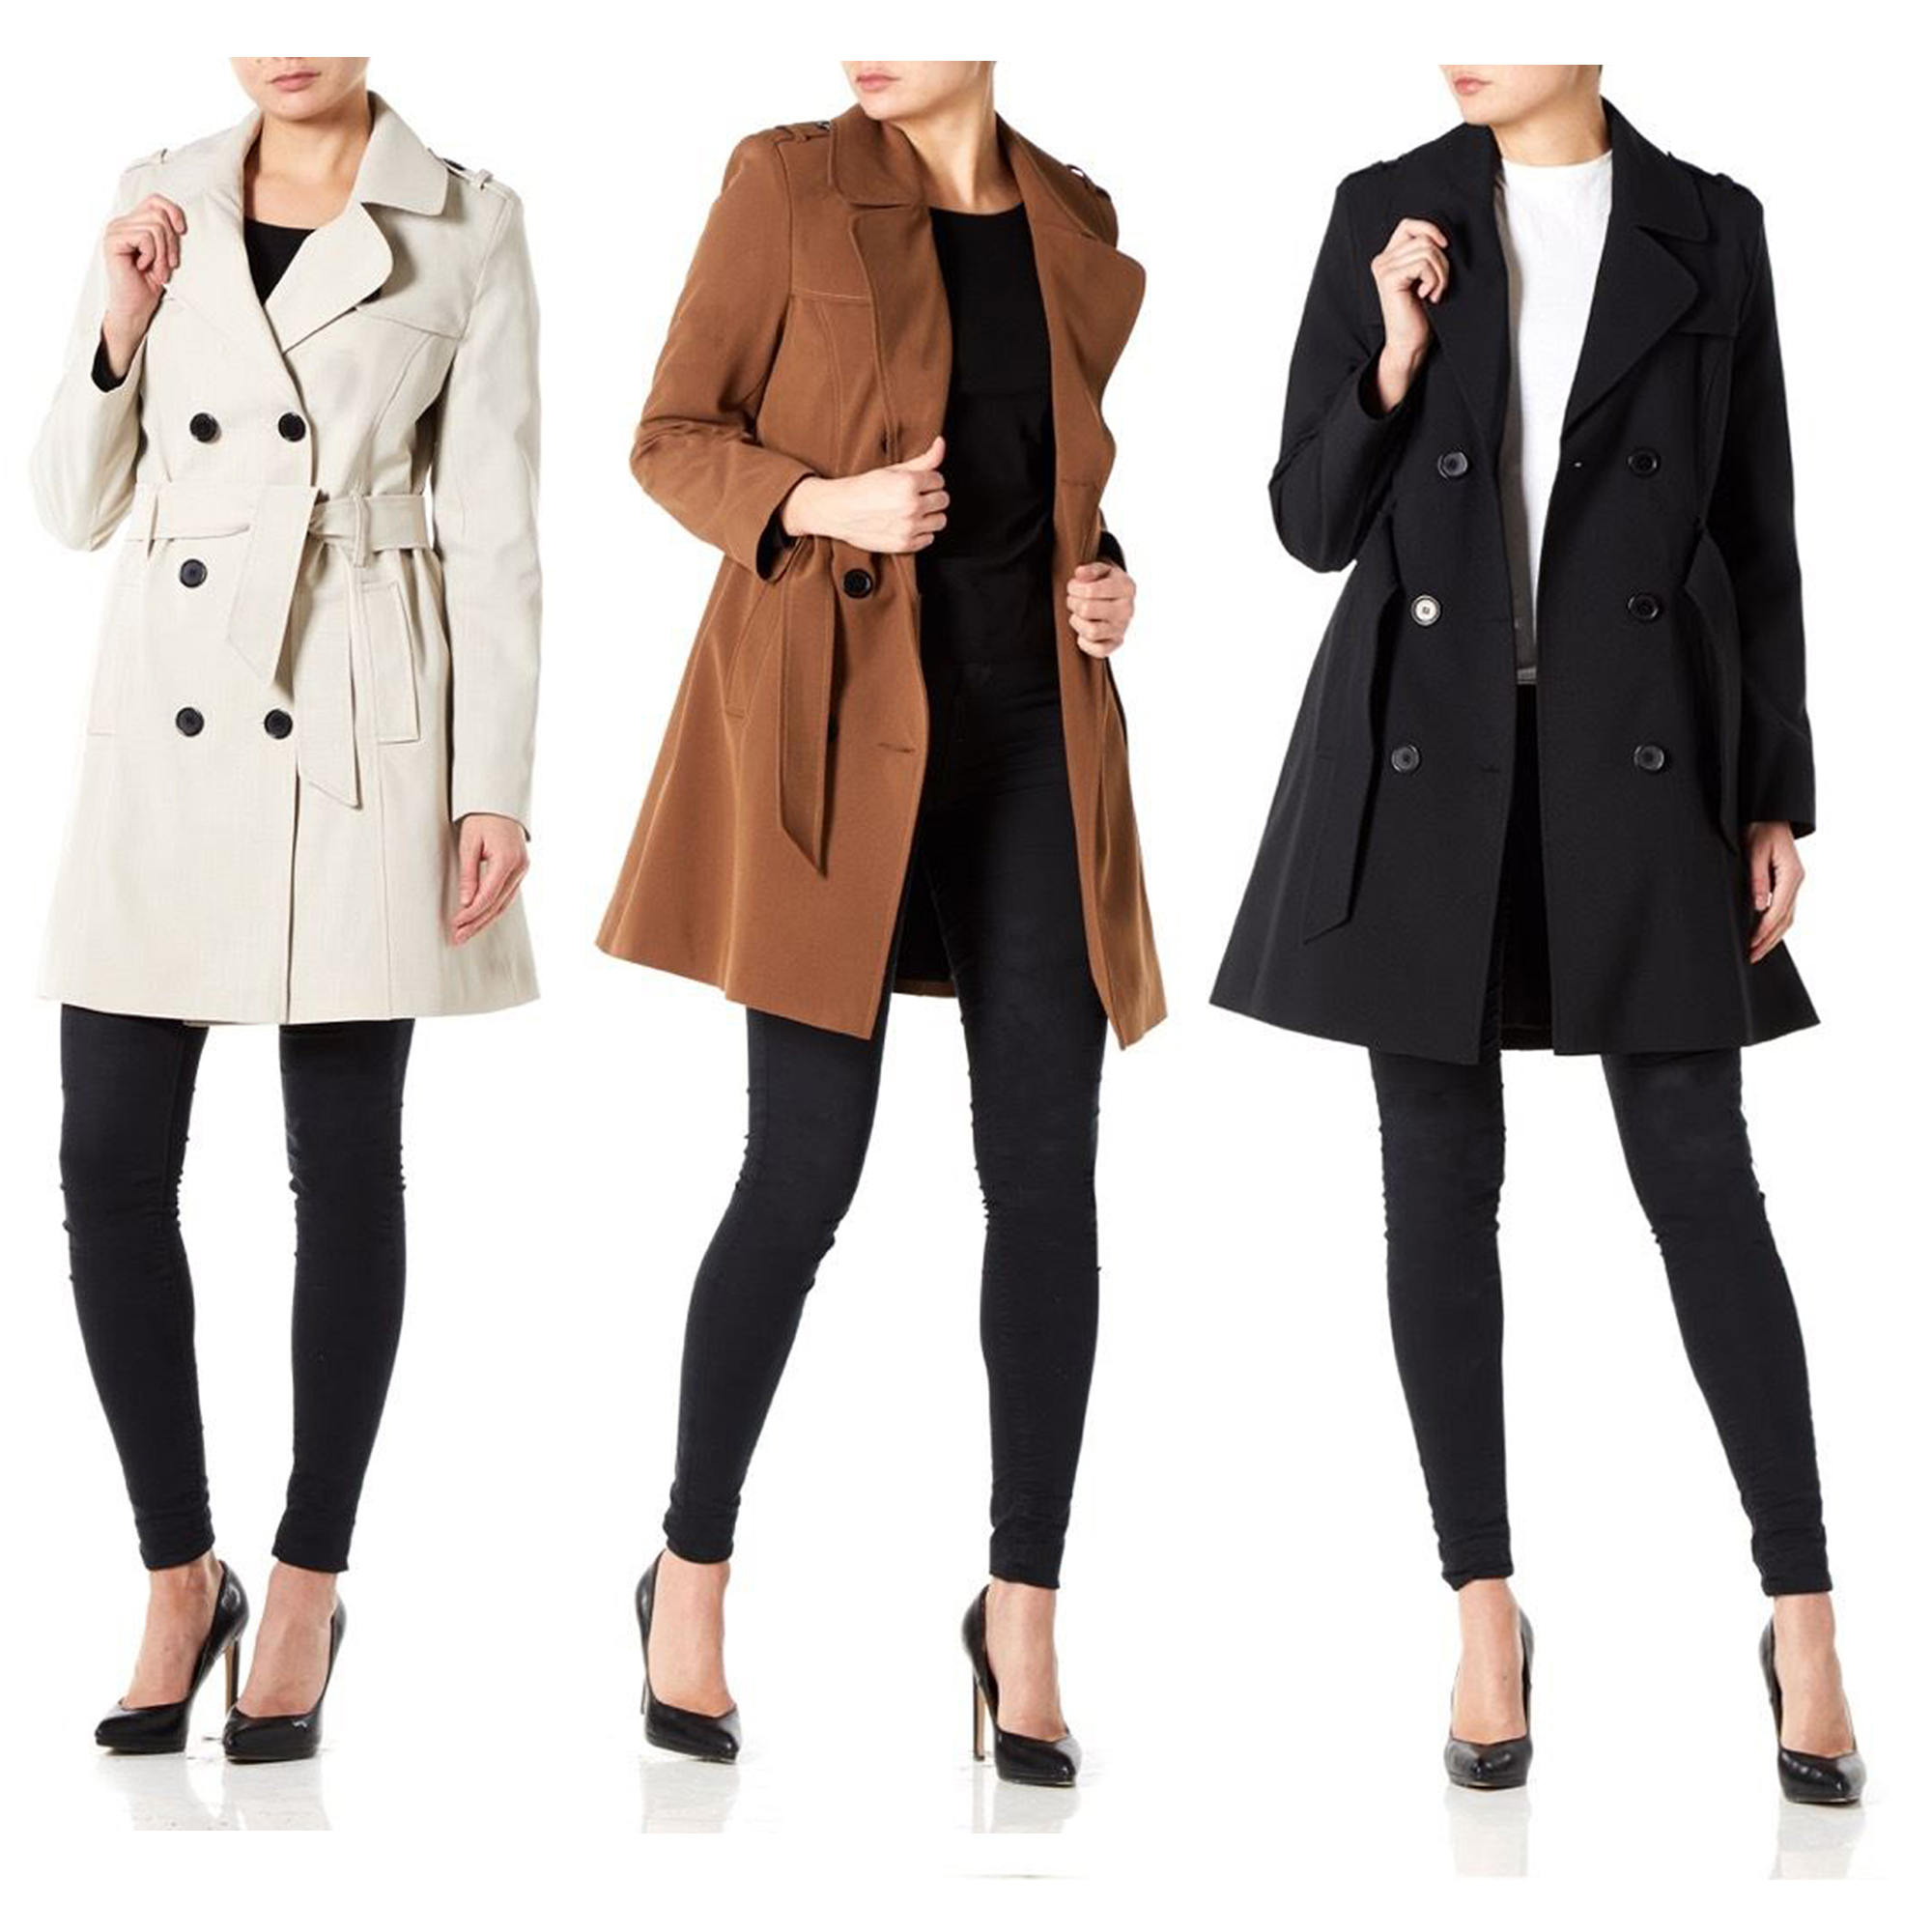 820d2f1db9 Details about Ladies Jacket Womens Double Breasted Mac Trench Coat Military  Spring Summer New